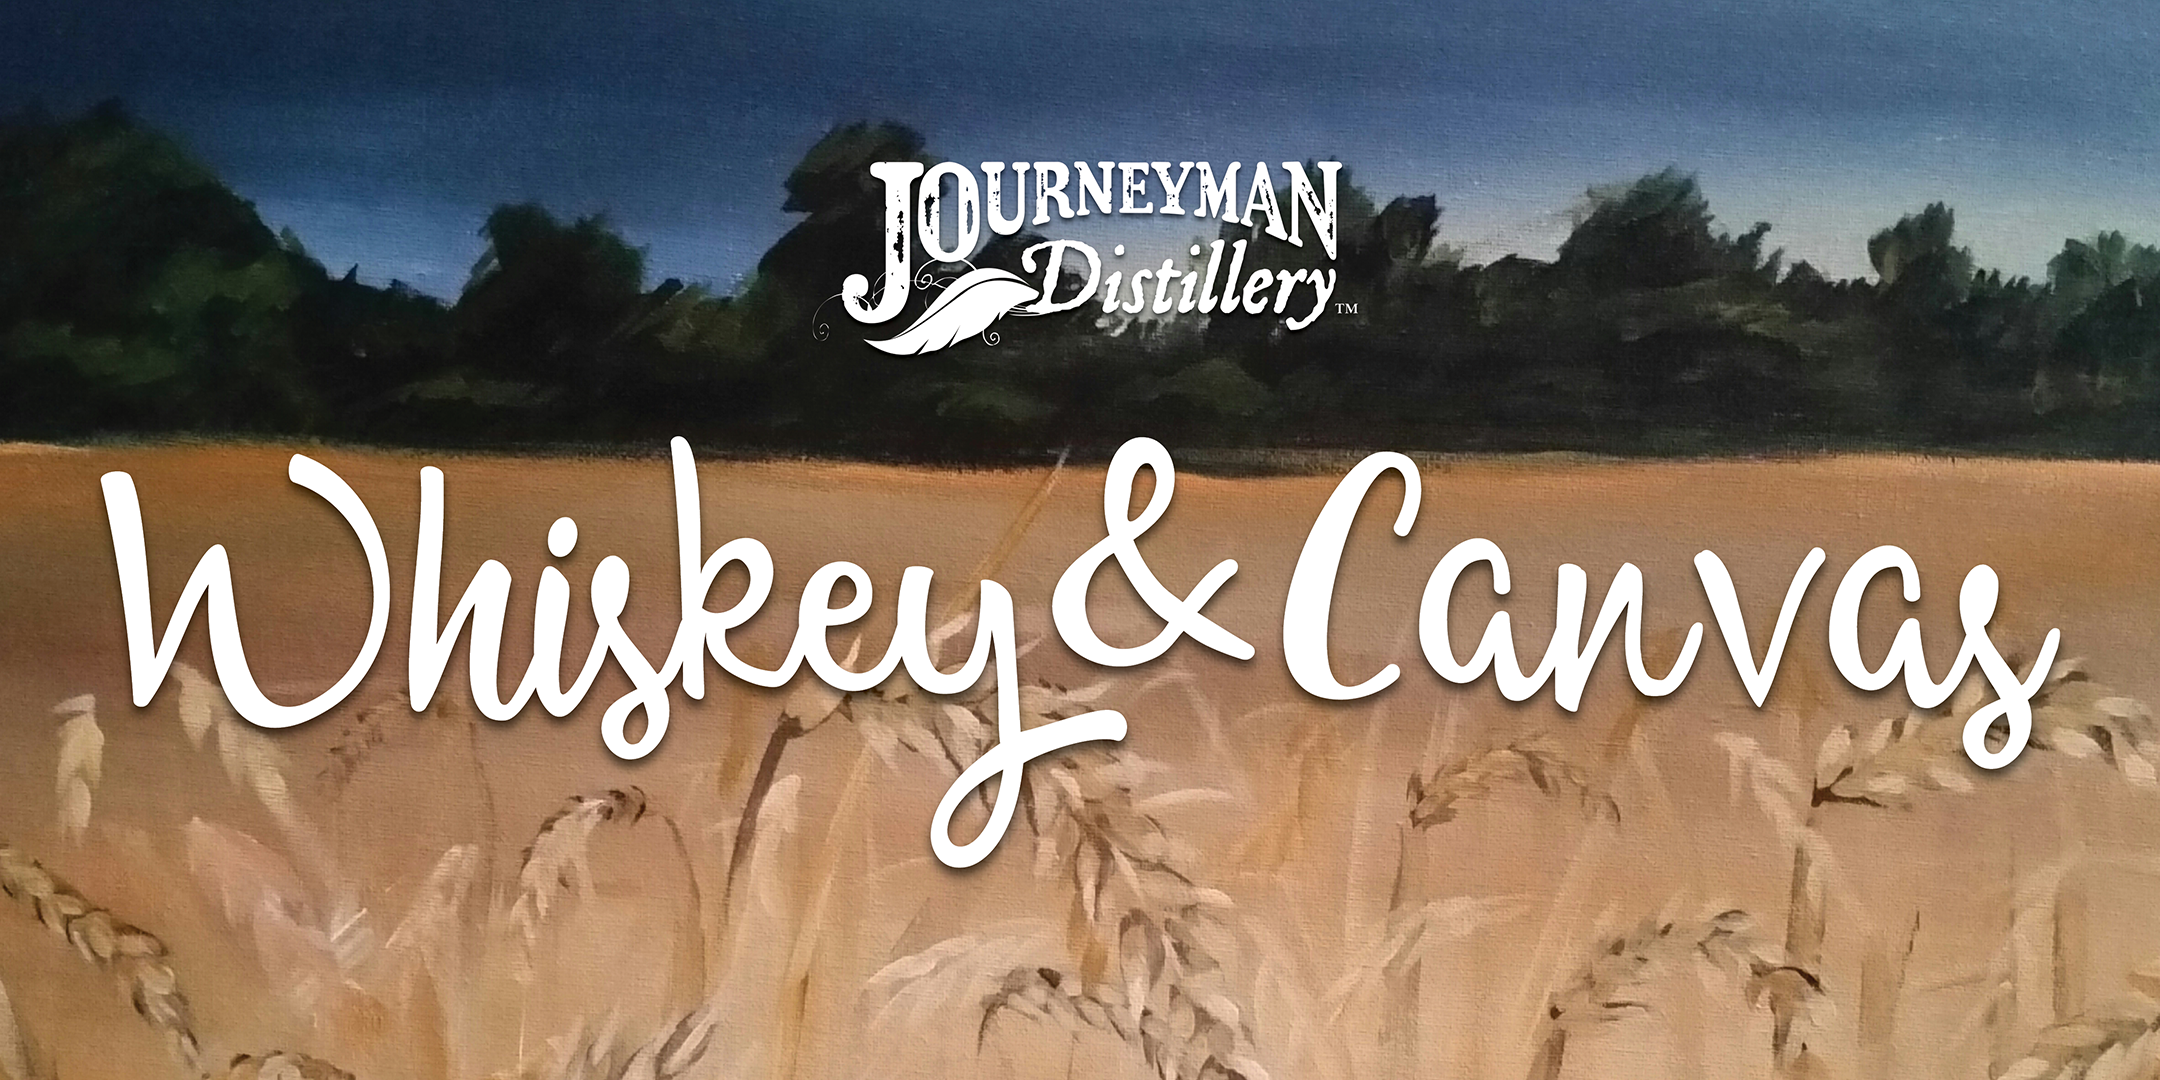 Whiskey and Canvas - Eventbrite Banner